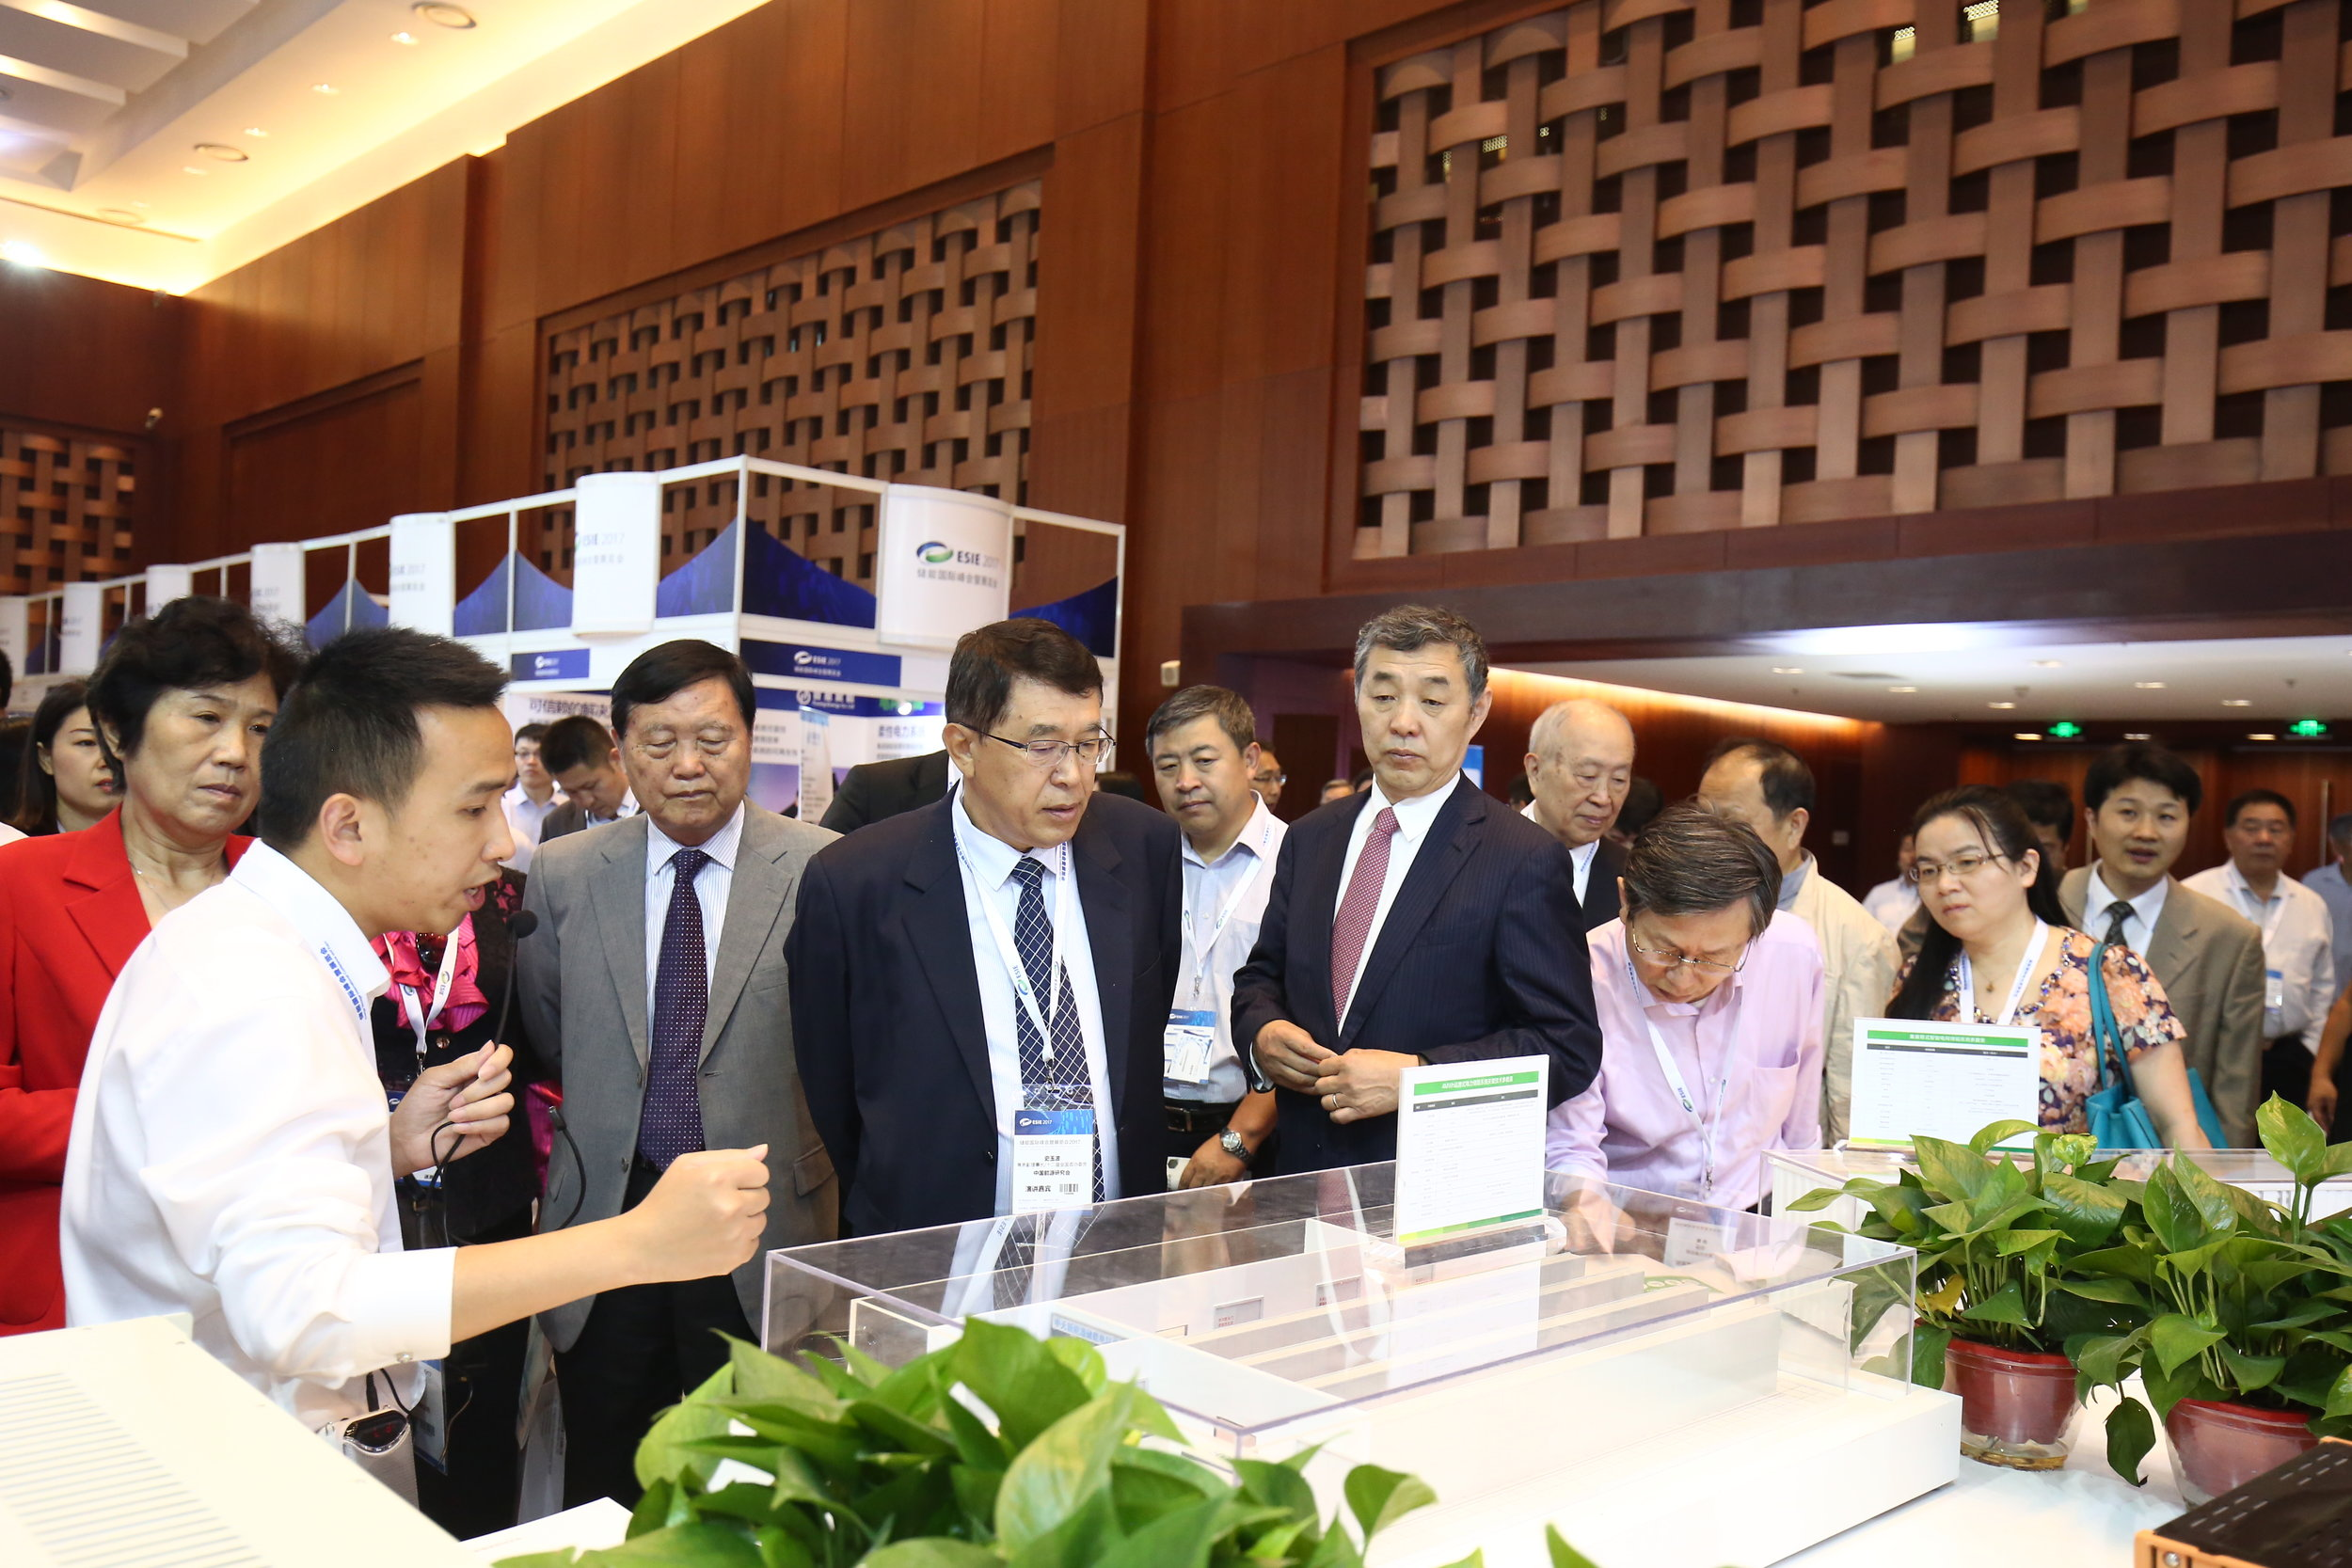 Government leaders tour the expo floor and connect with industry representatives to learn about new technologies